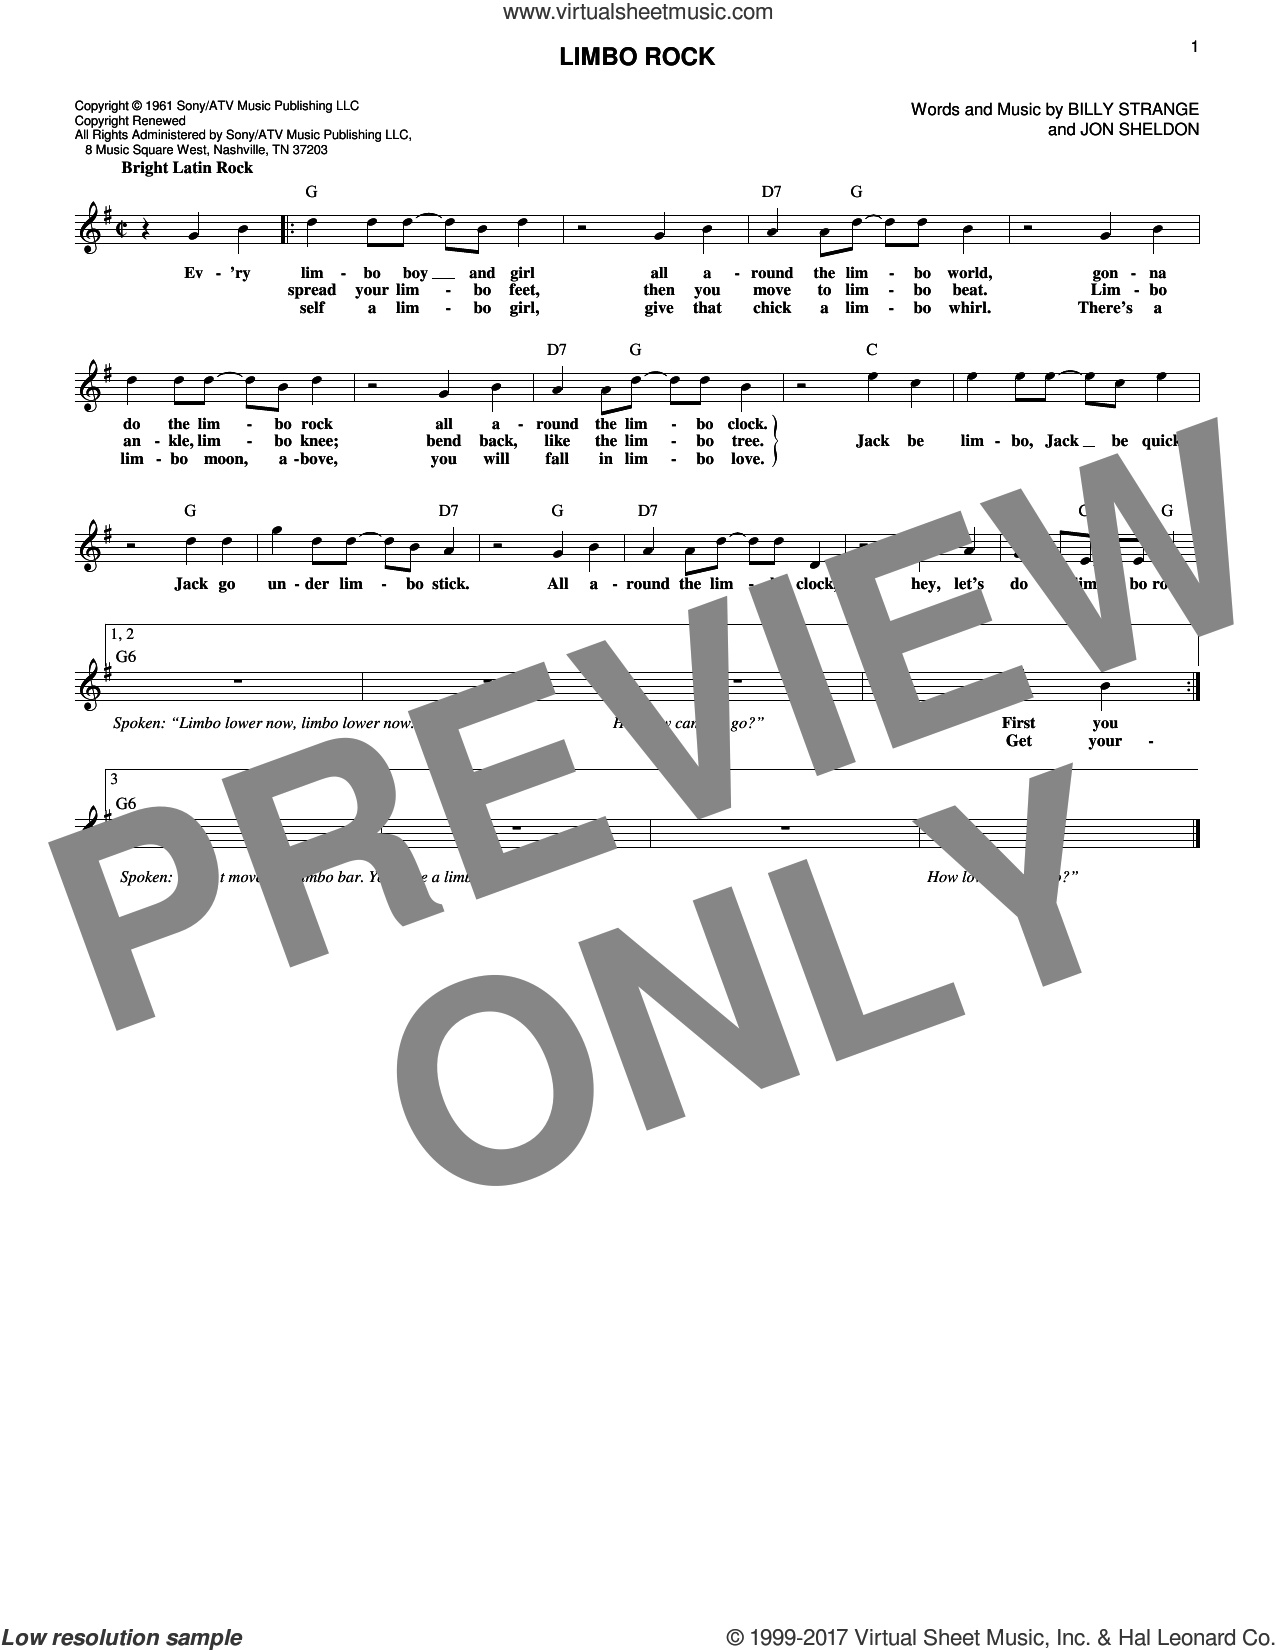 Limbo Rock sheet music for voice and other instruments (fake book) by Chubby Checker, Billy Strange and Jon Sheldon, intermediate skill level